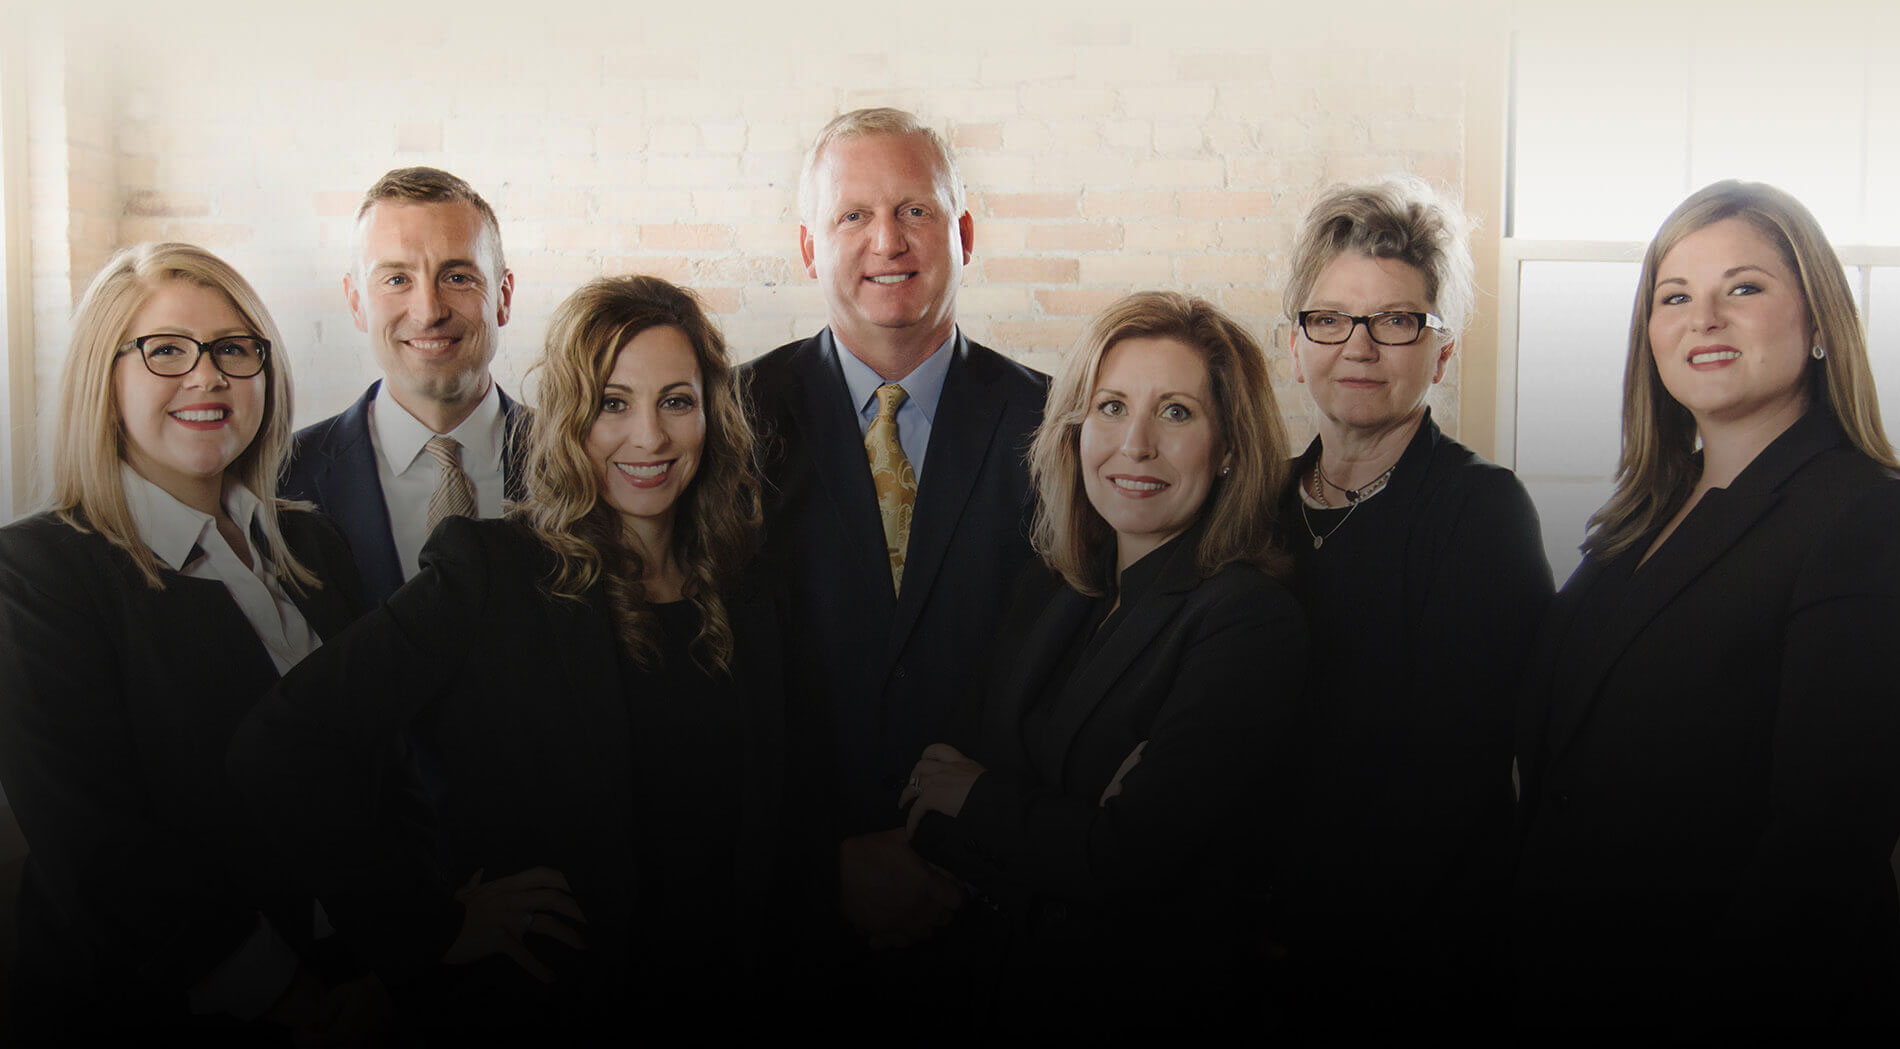 The team of experienced attorneys at Harper Evans Wade & Netemeyer defend clients across Missouri.